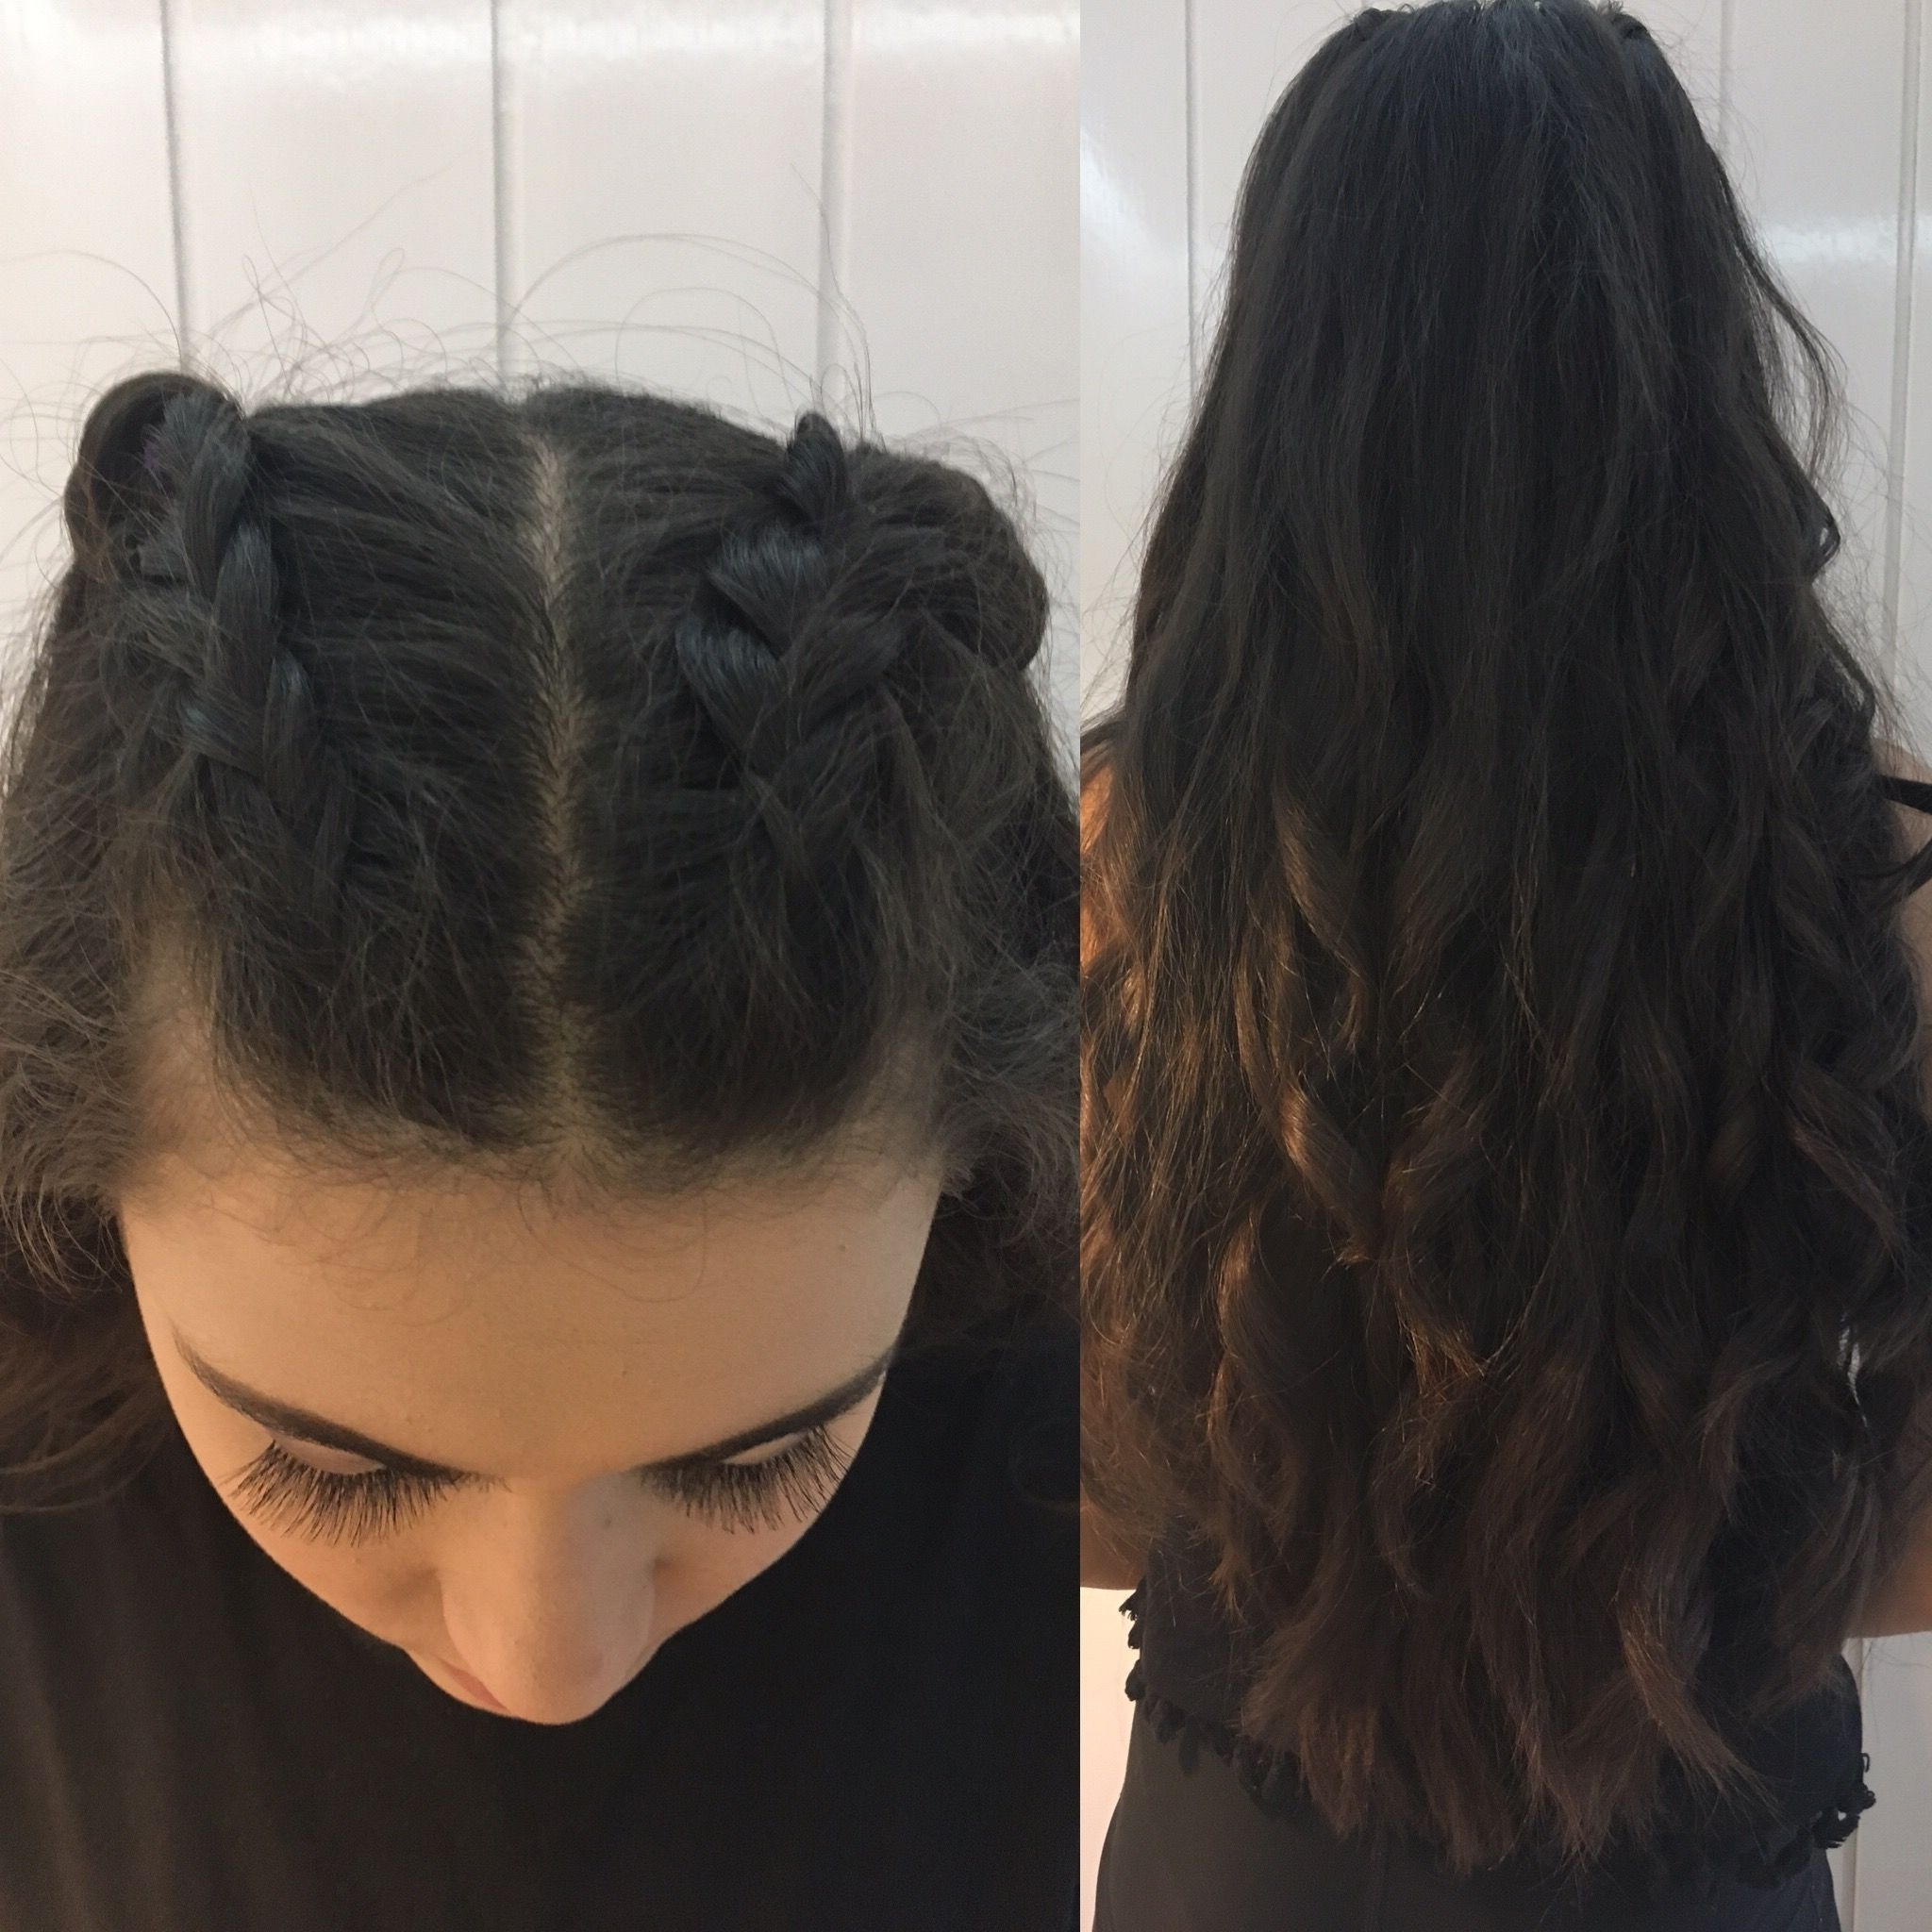 Preferred Romantic Curly And Messy Two French Braids Hairstyles Inside Prom Hair (View 11 of 15)